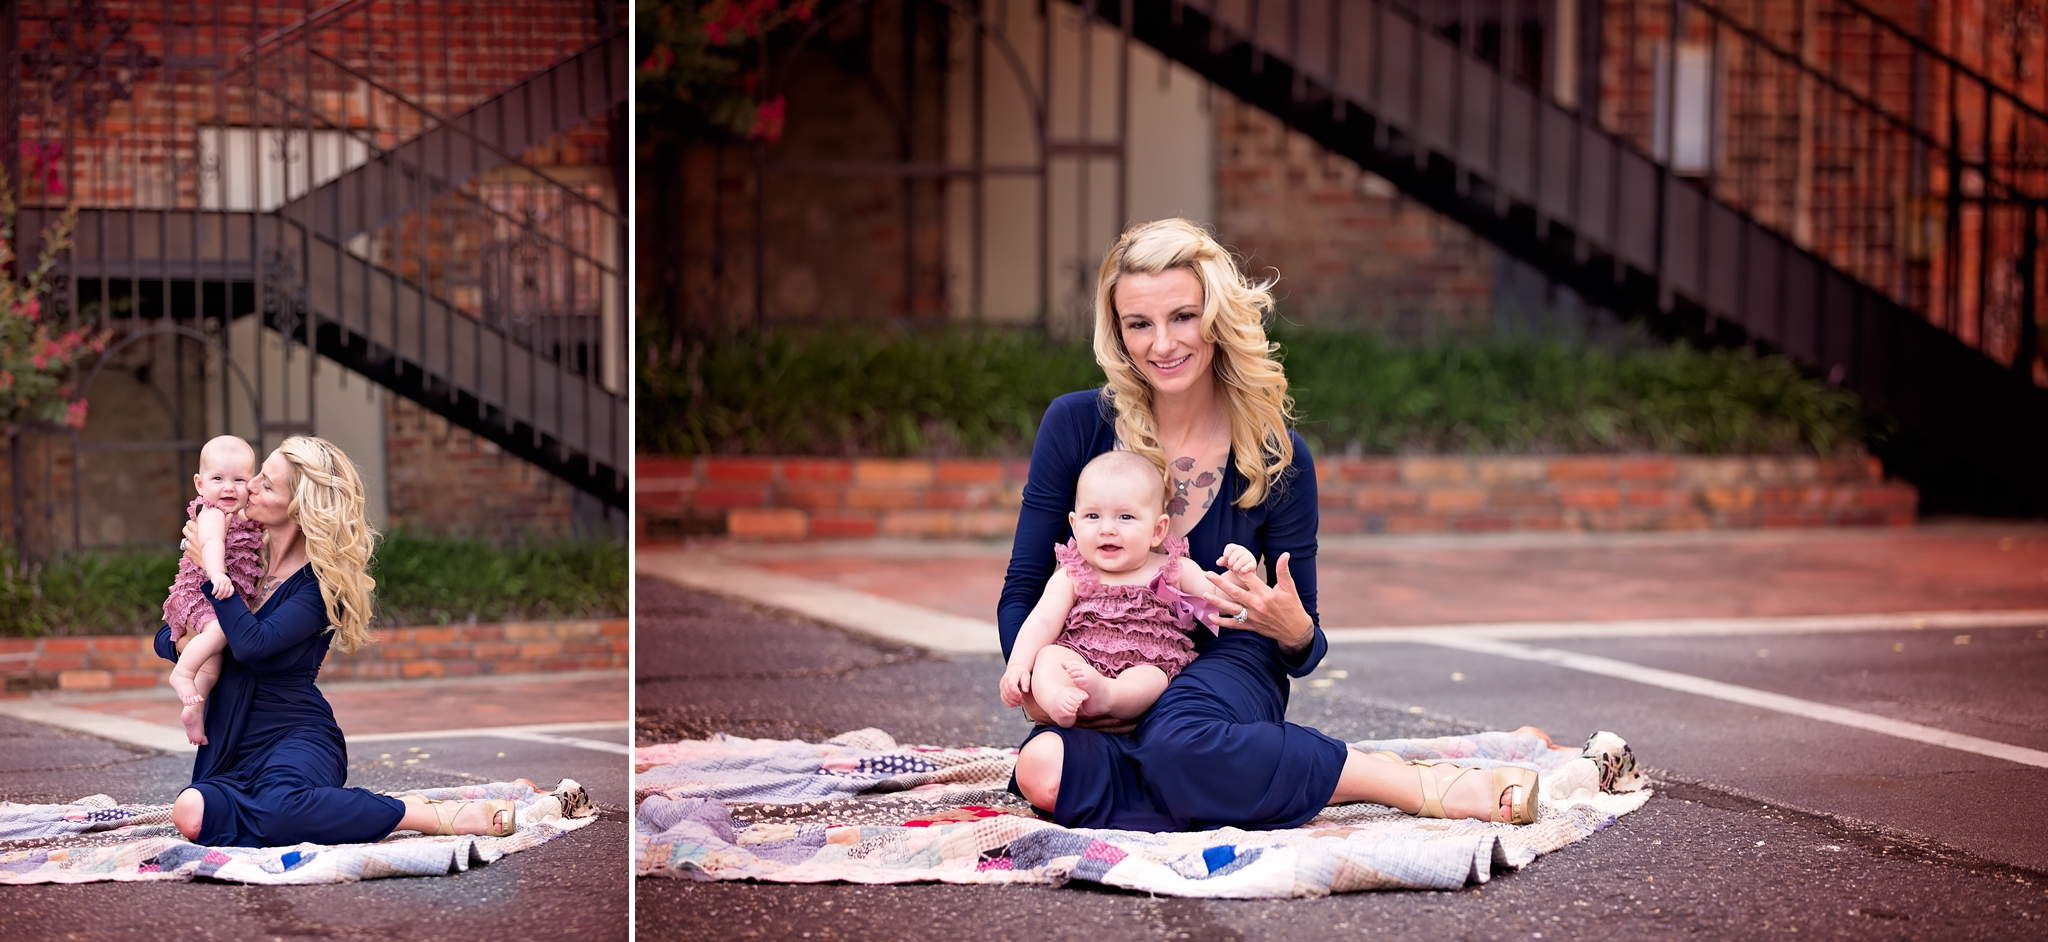 Family Photography in Downtown Fayetteville, North Carolina